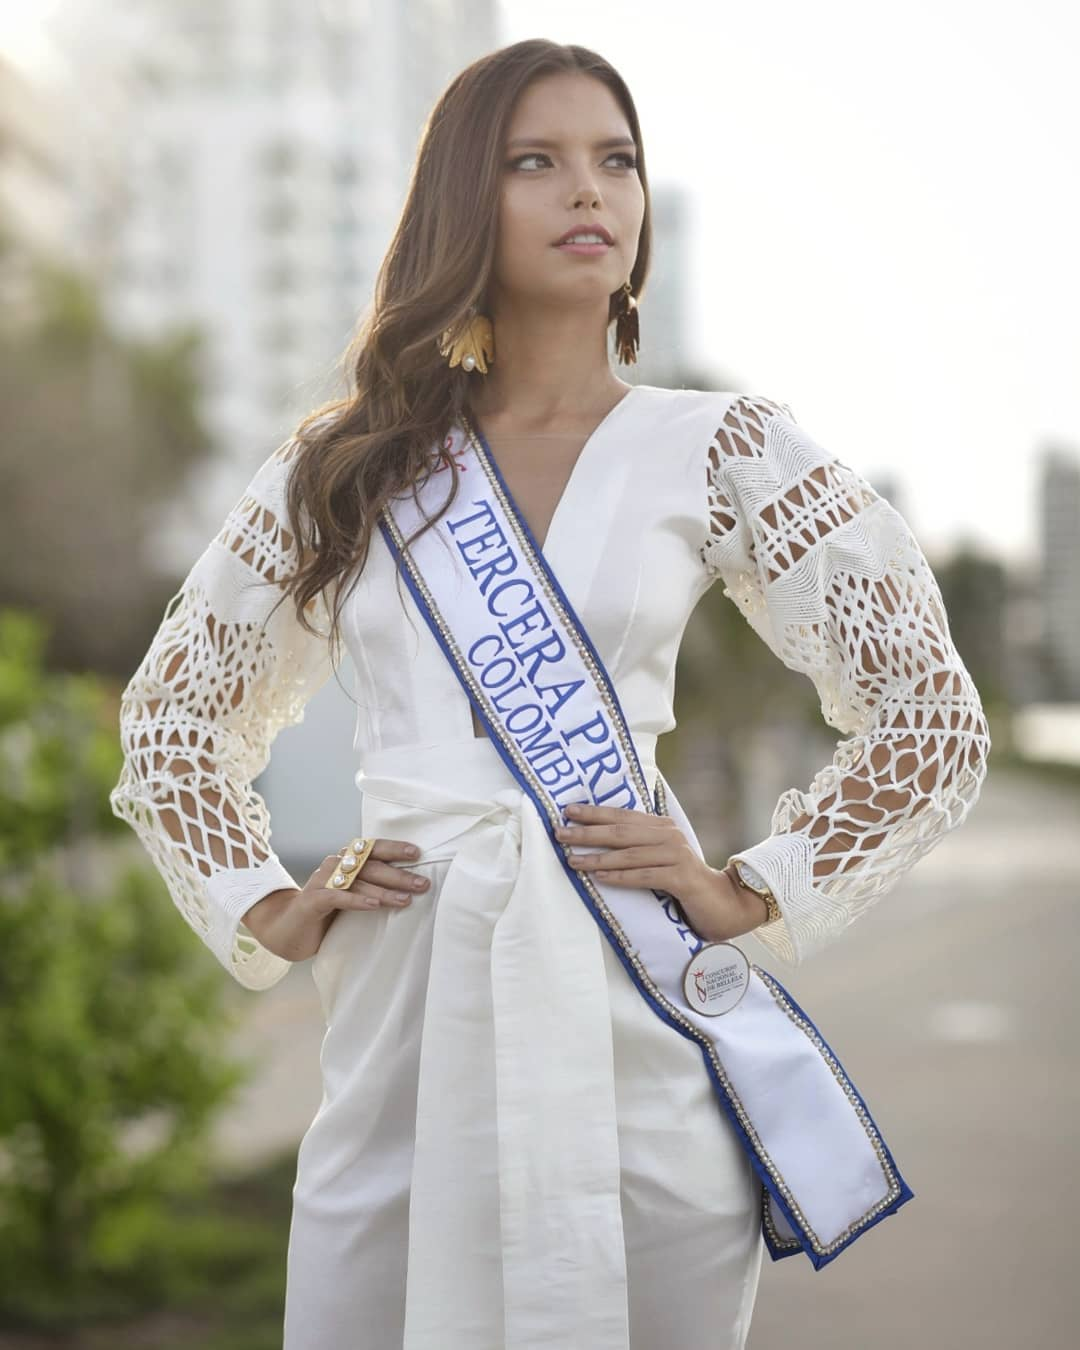 yaiselle tous, miss supranational colombia 2019. 61415510